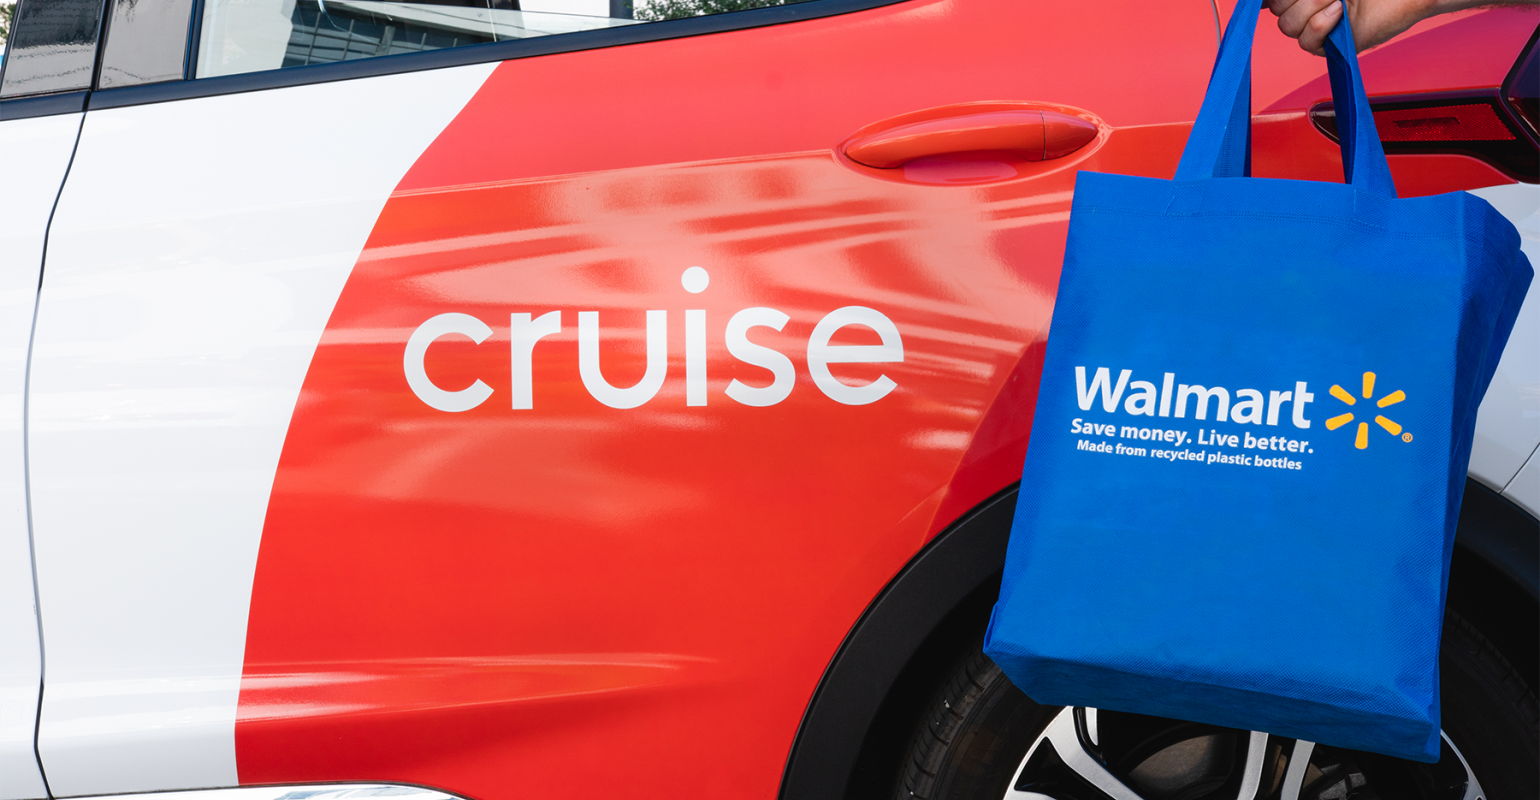 Walmart plans to pilot all-electric self-driving delivery in 2021